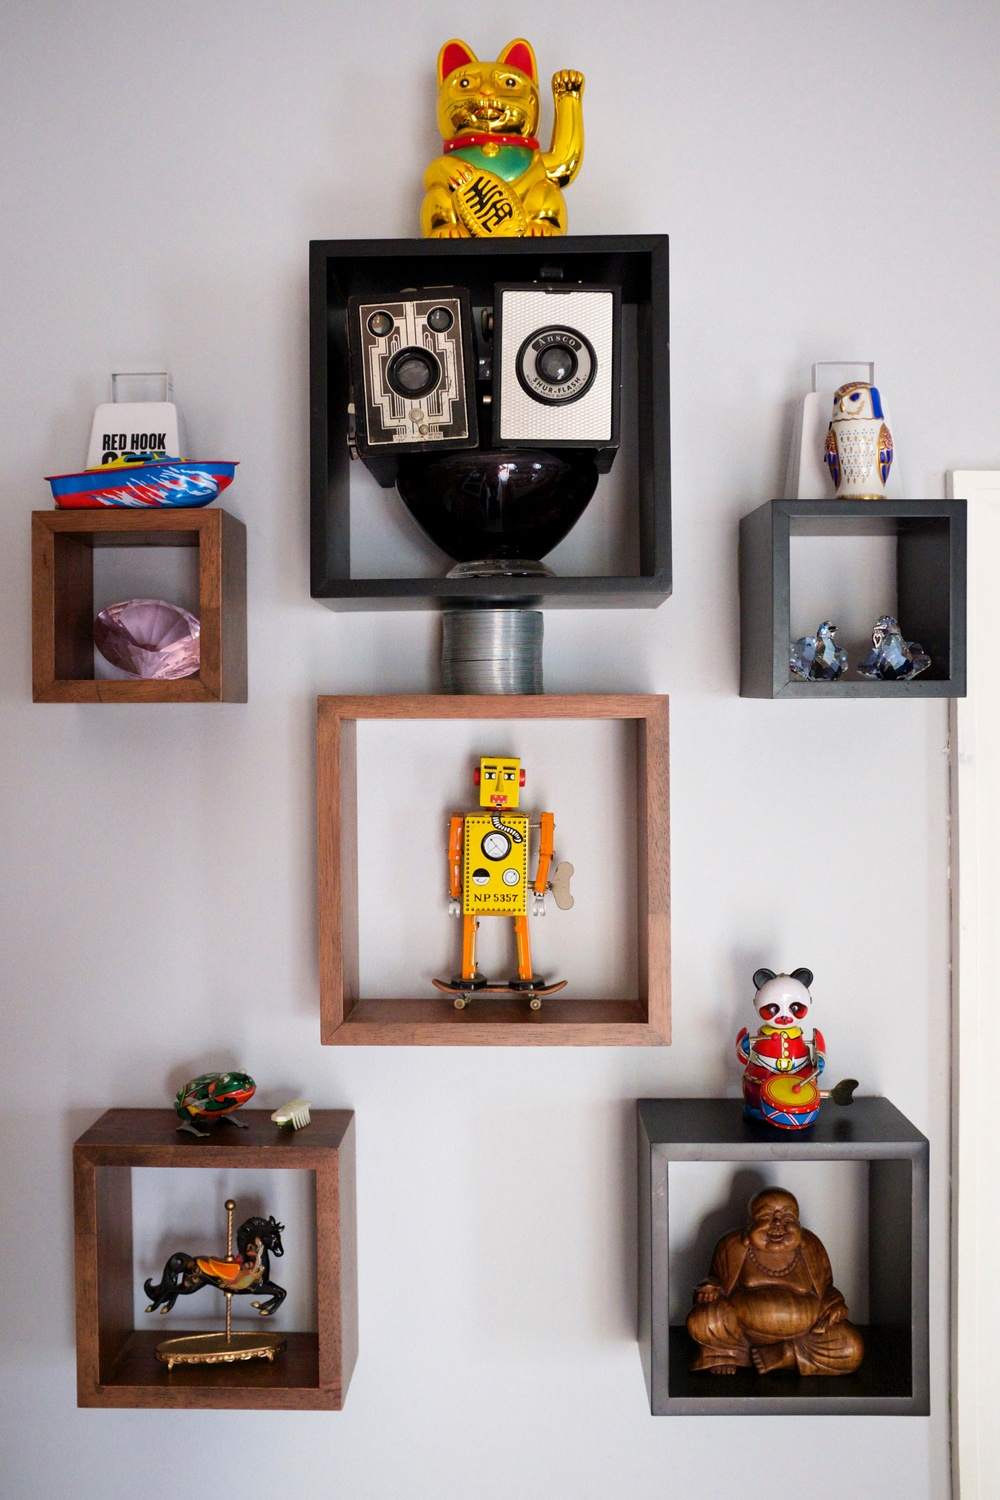 When we moved in I told Angel he could put up the shelves any way he wanted so he built me a shelf robot.